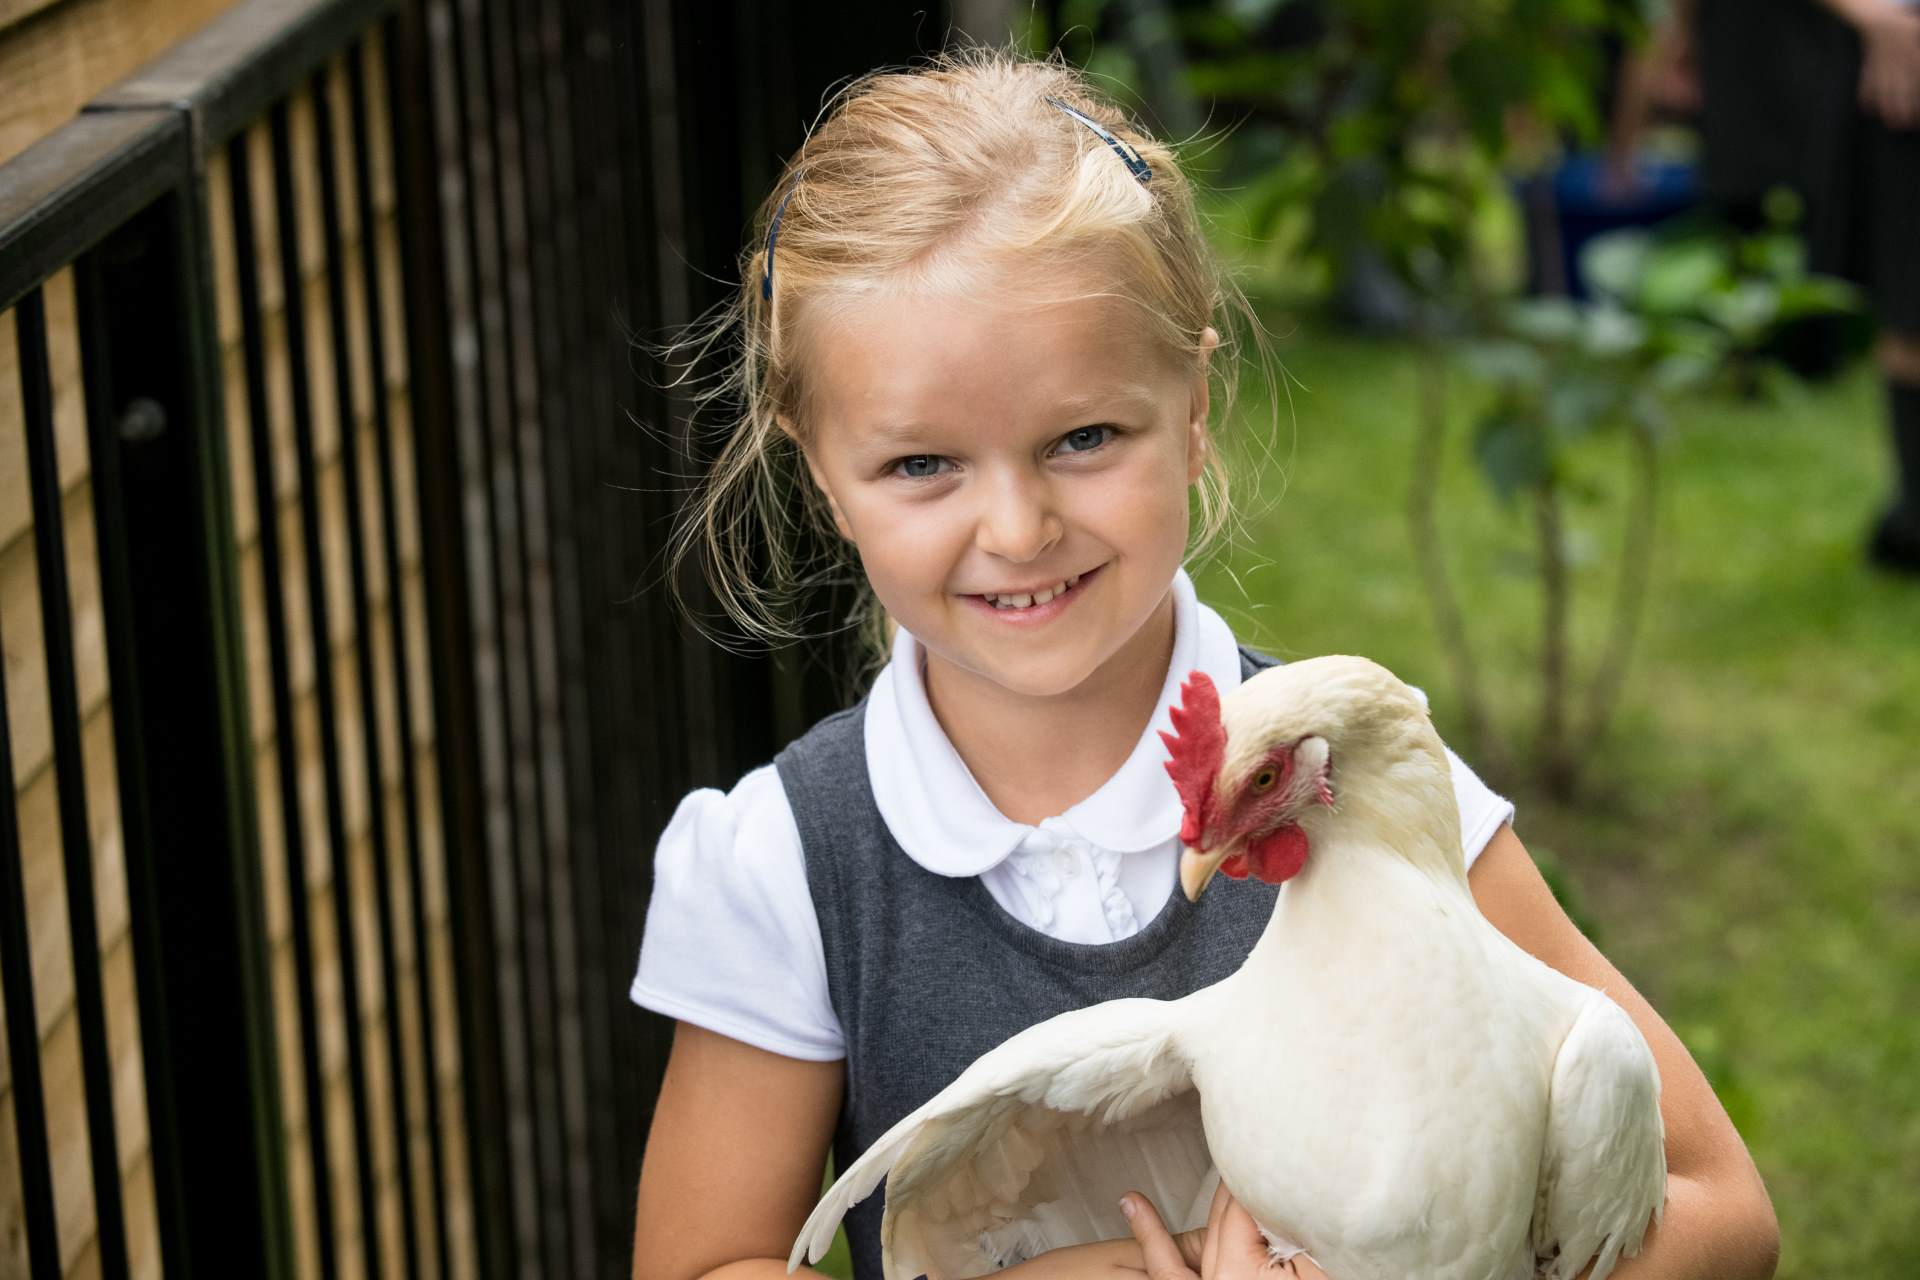 Girl holding a white chicken